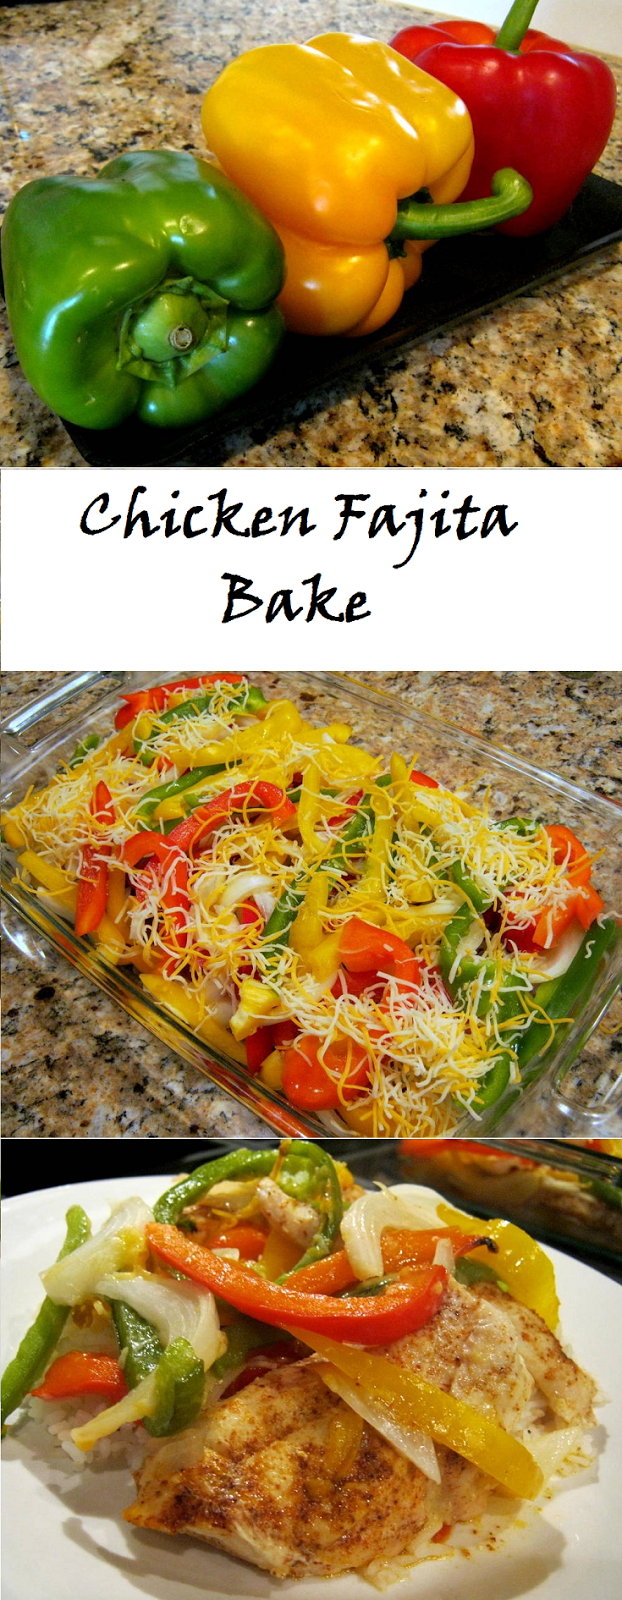 Chicken Fajita Bake before, during, and after preparation. Yes, it tastes as good as it looks!